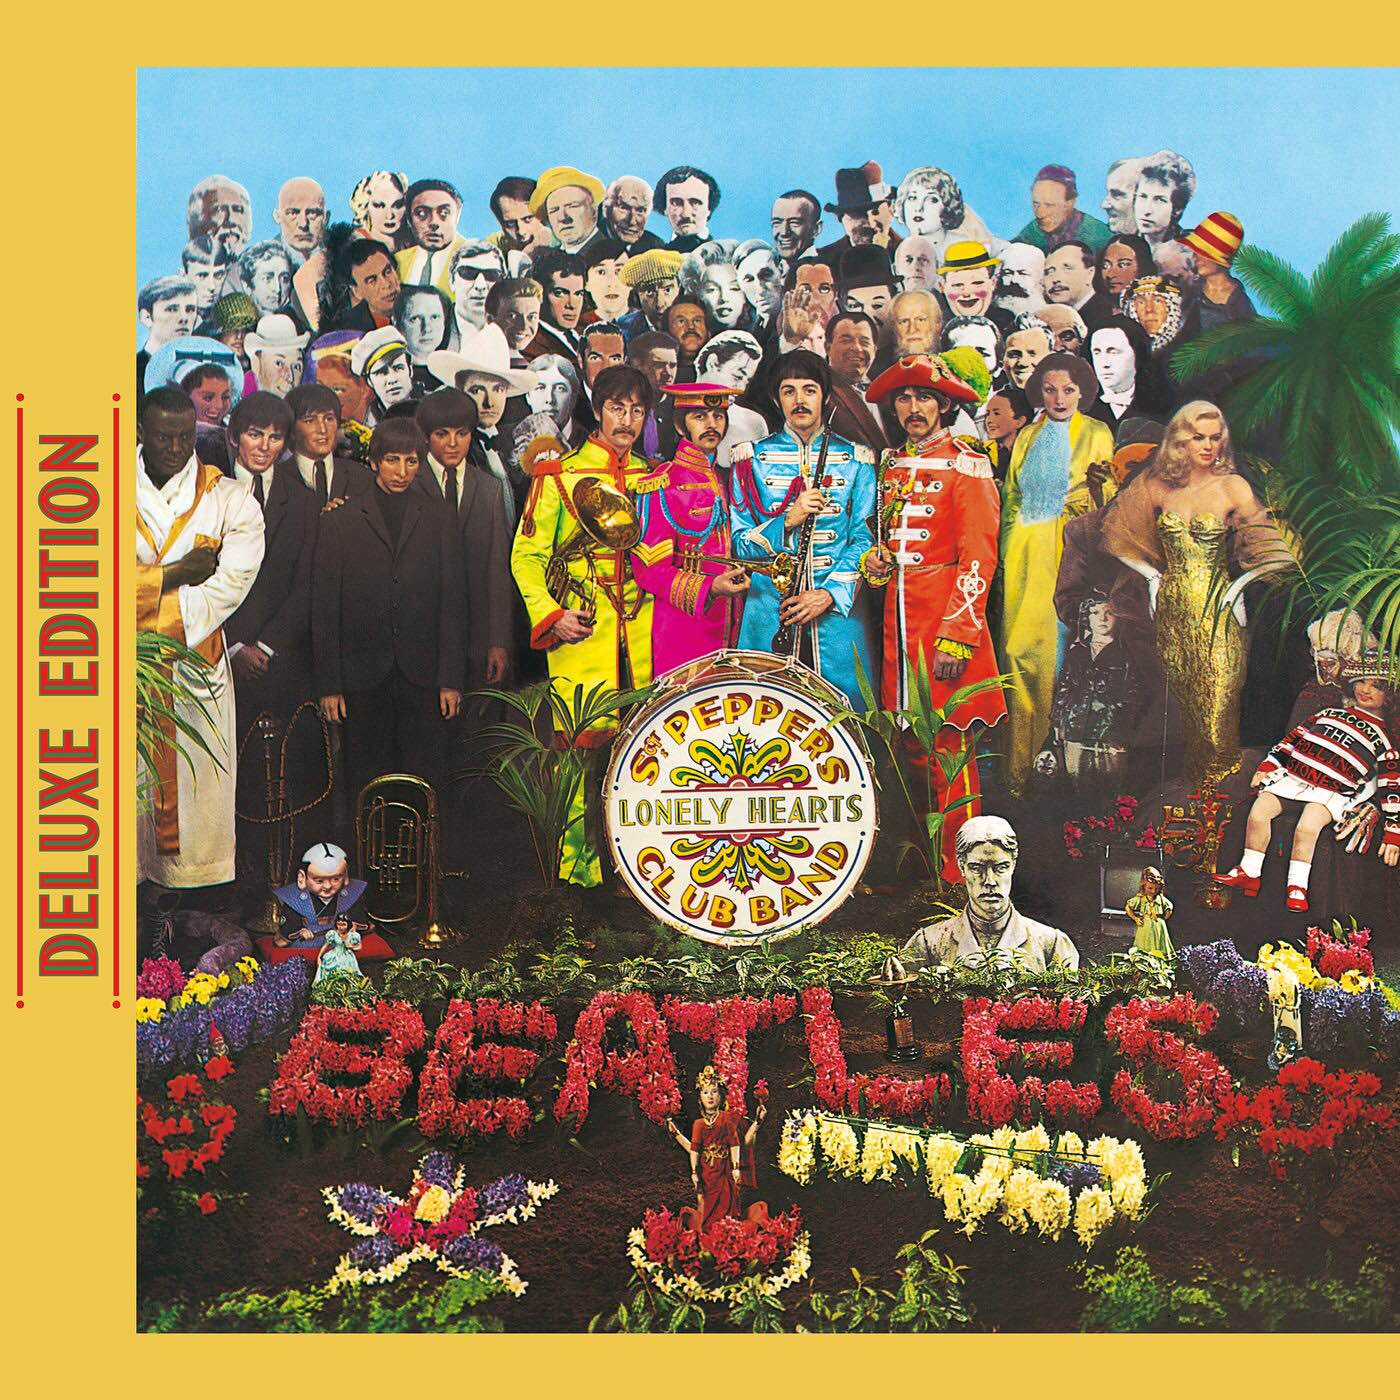 sgt-peppers-lonely-hearts-club-band-deluxe-edition-by-the-beatles